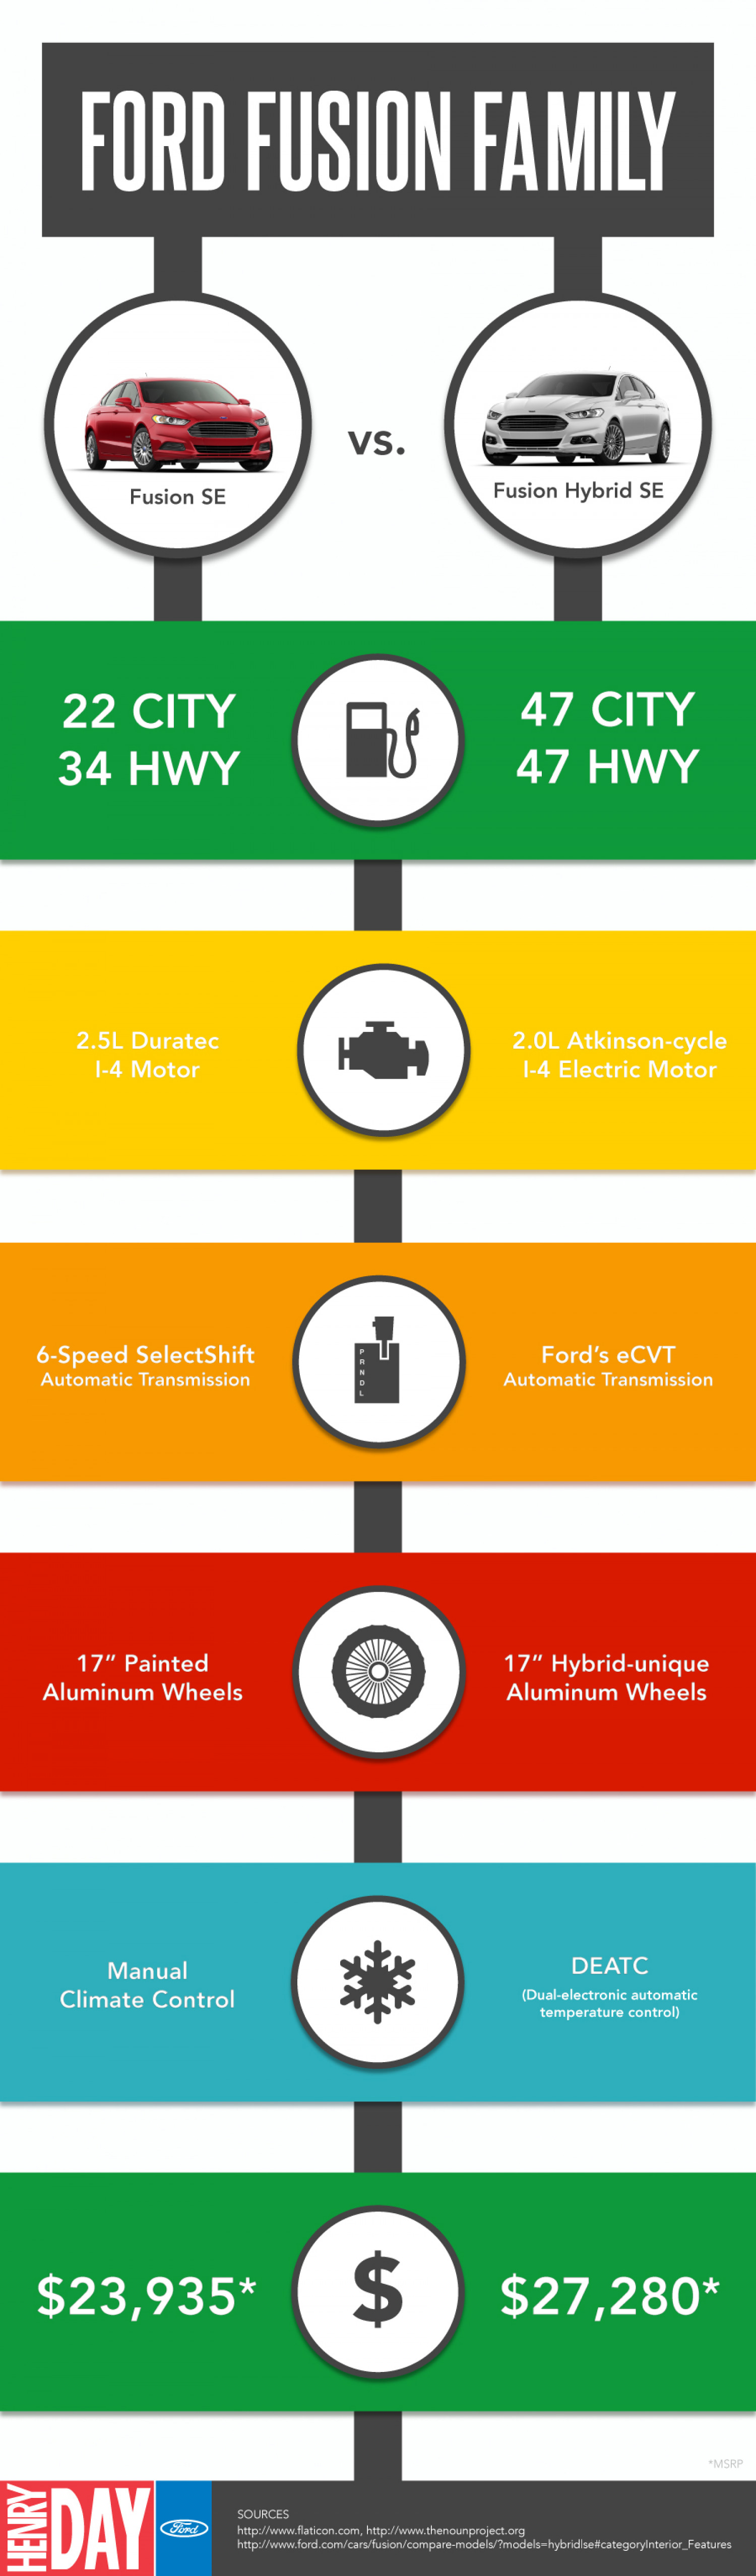 Ford Fusion Family Infographic